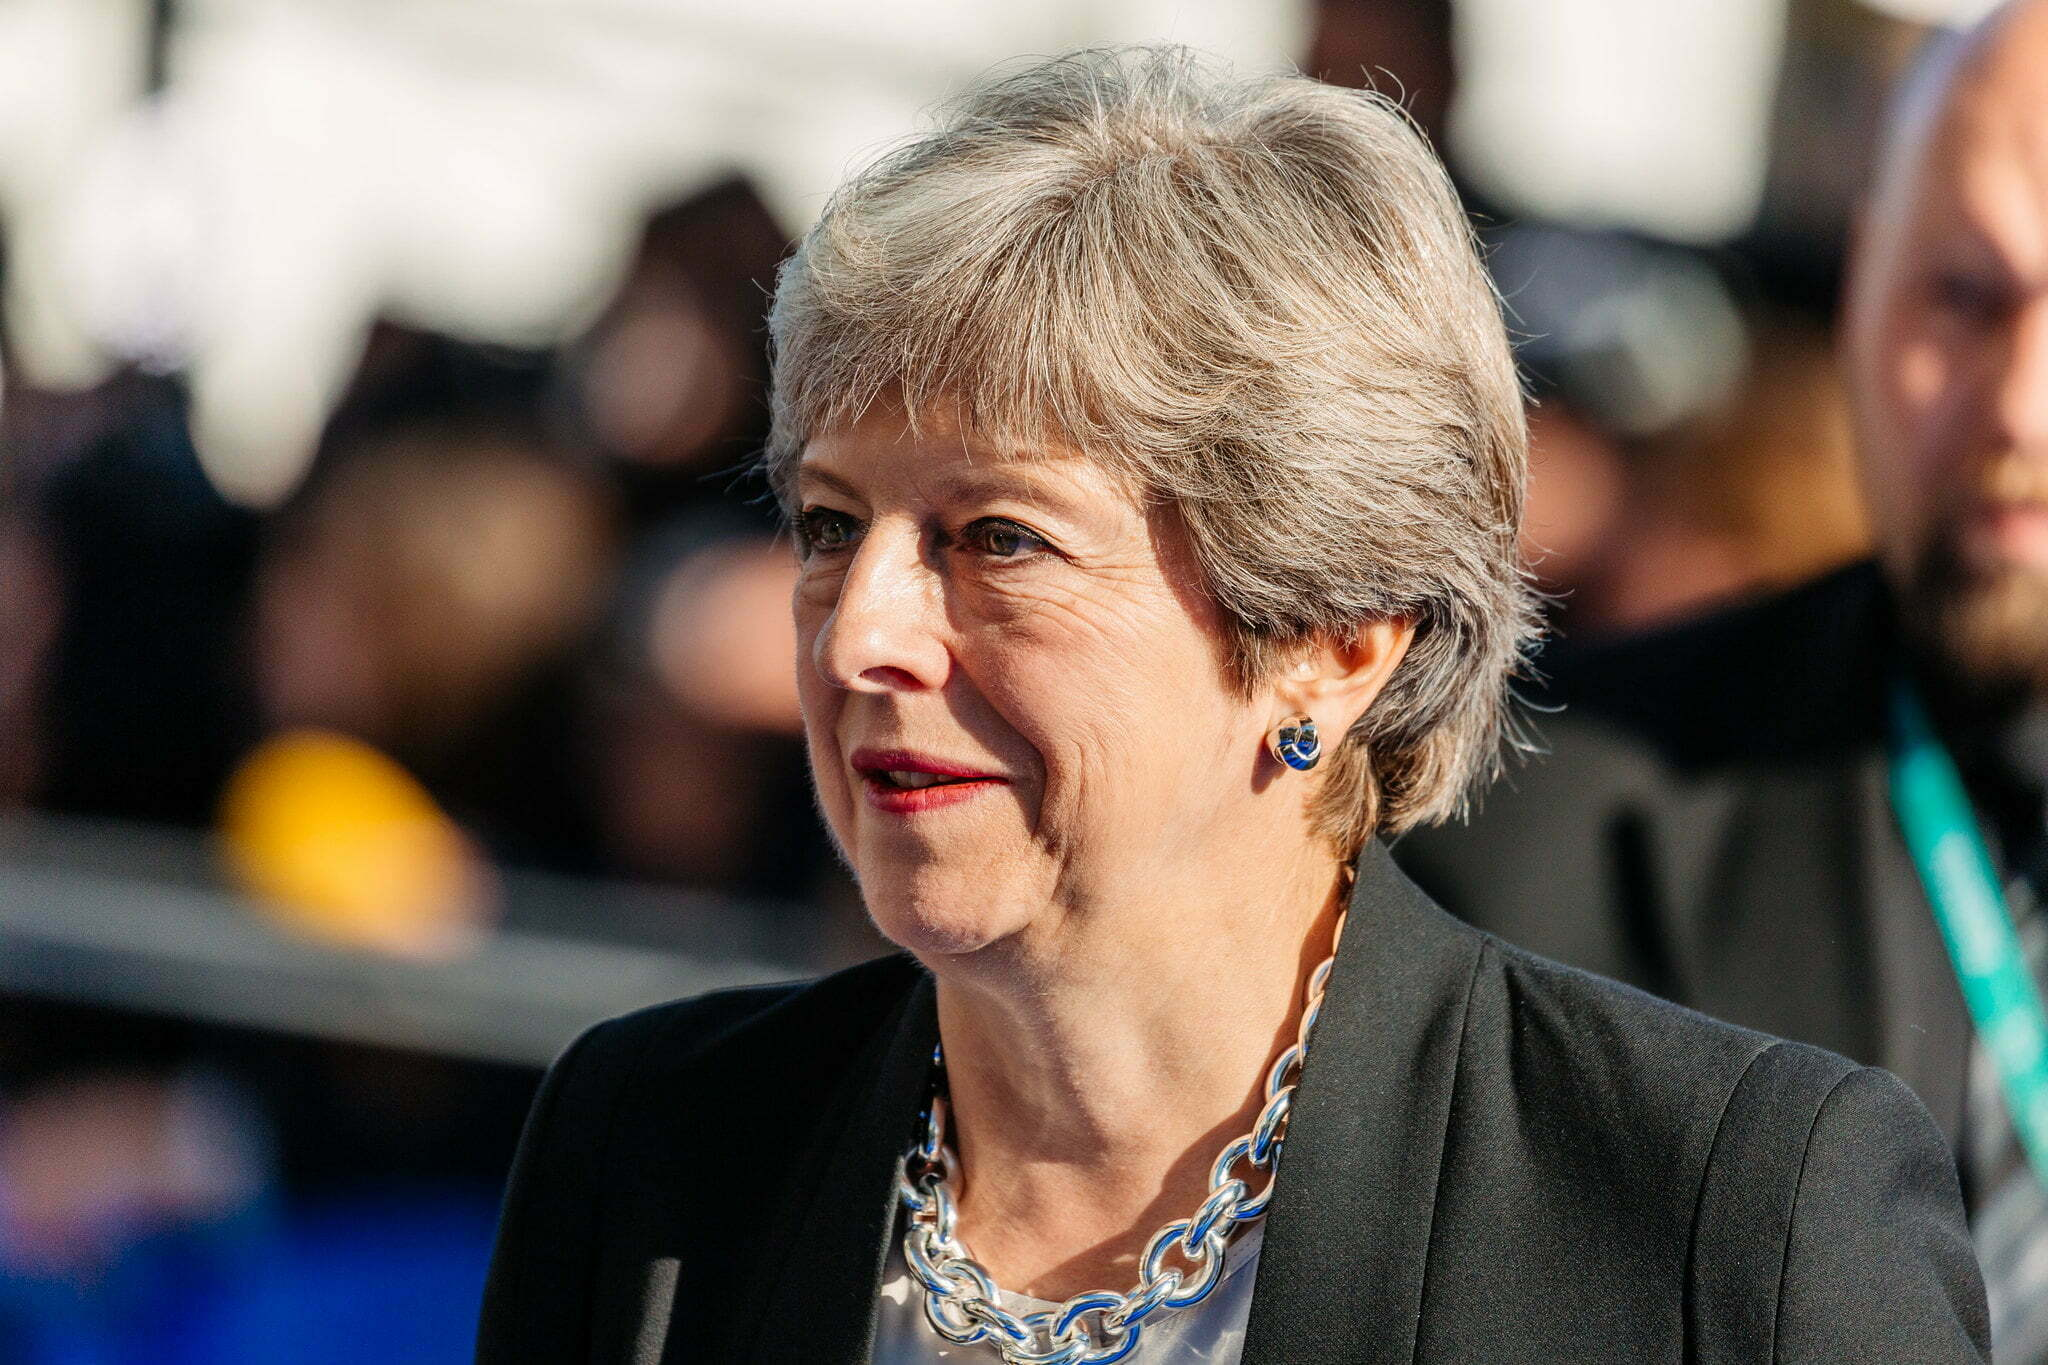 Immigration after May: What should the new Prime Minister Change?